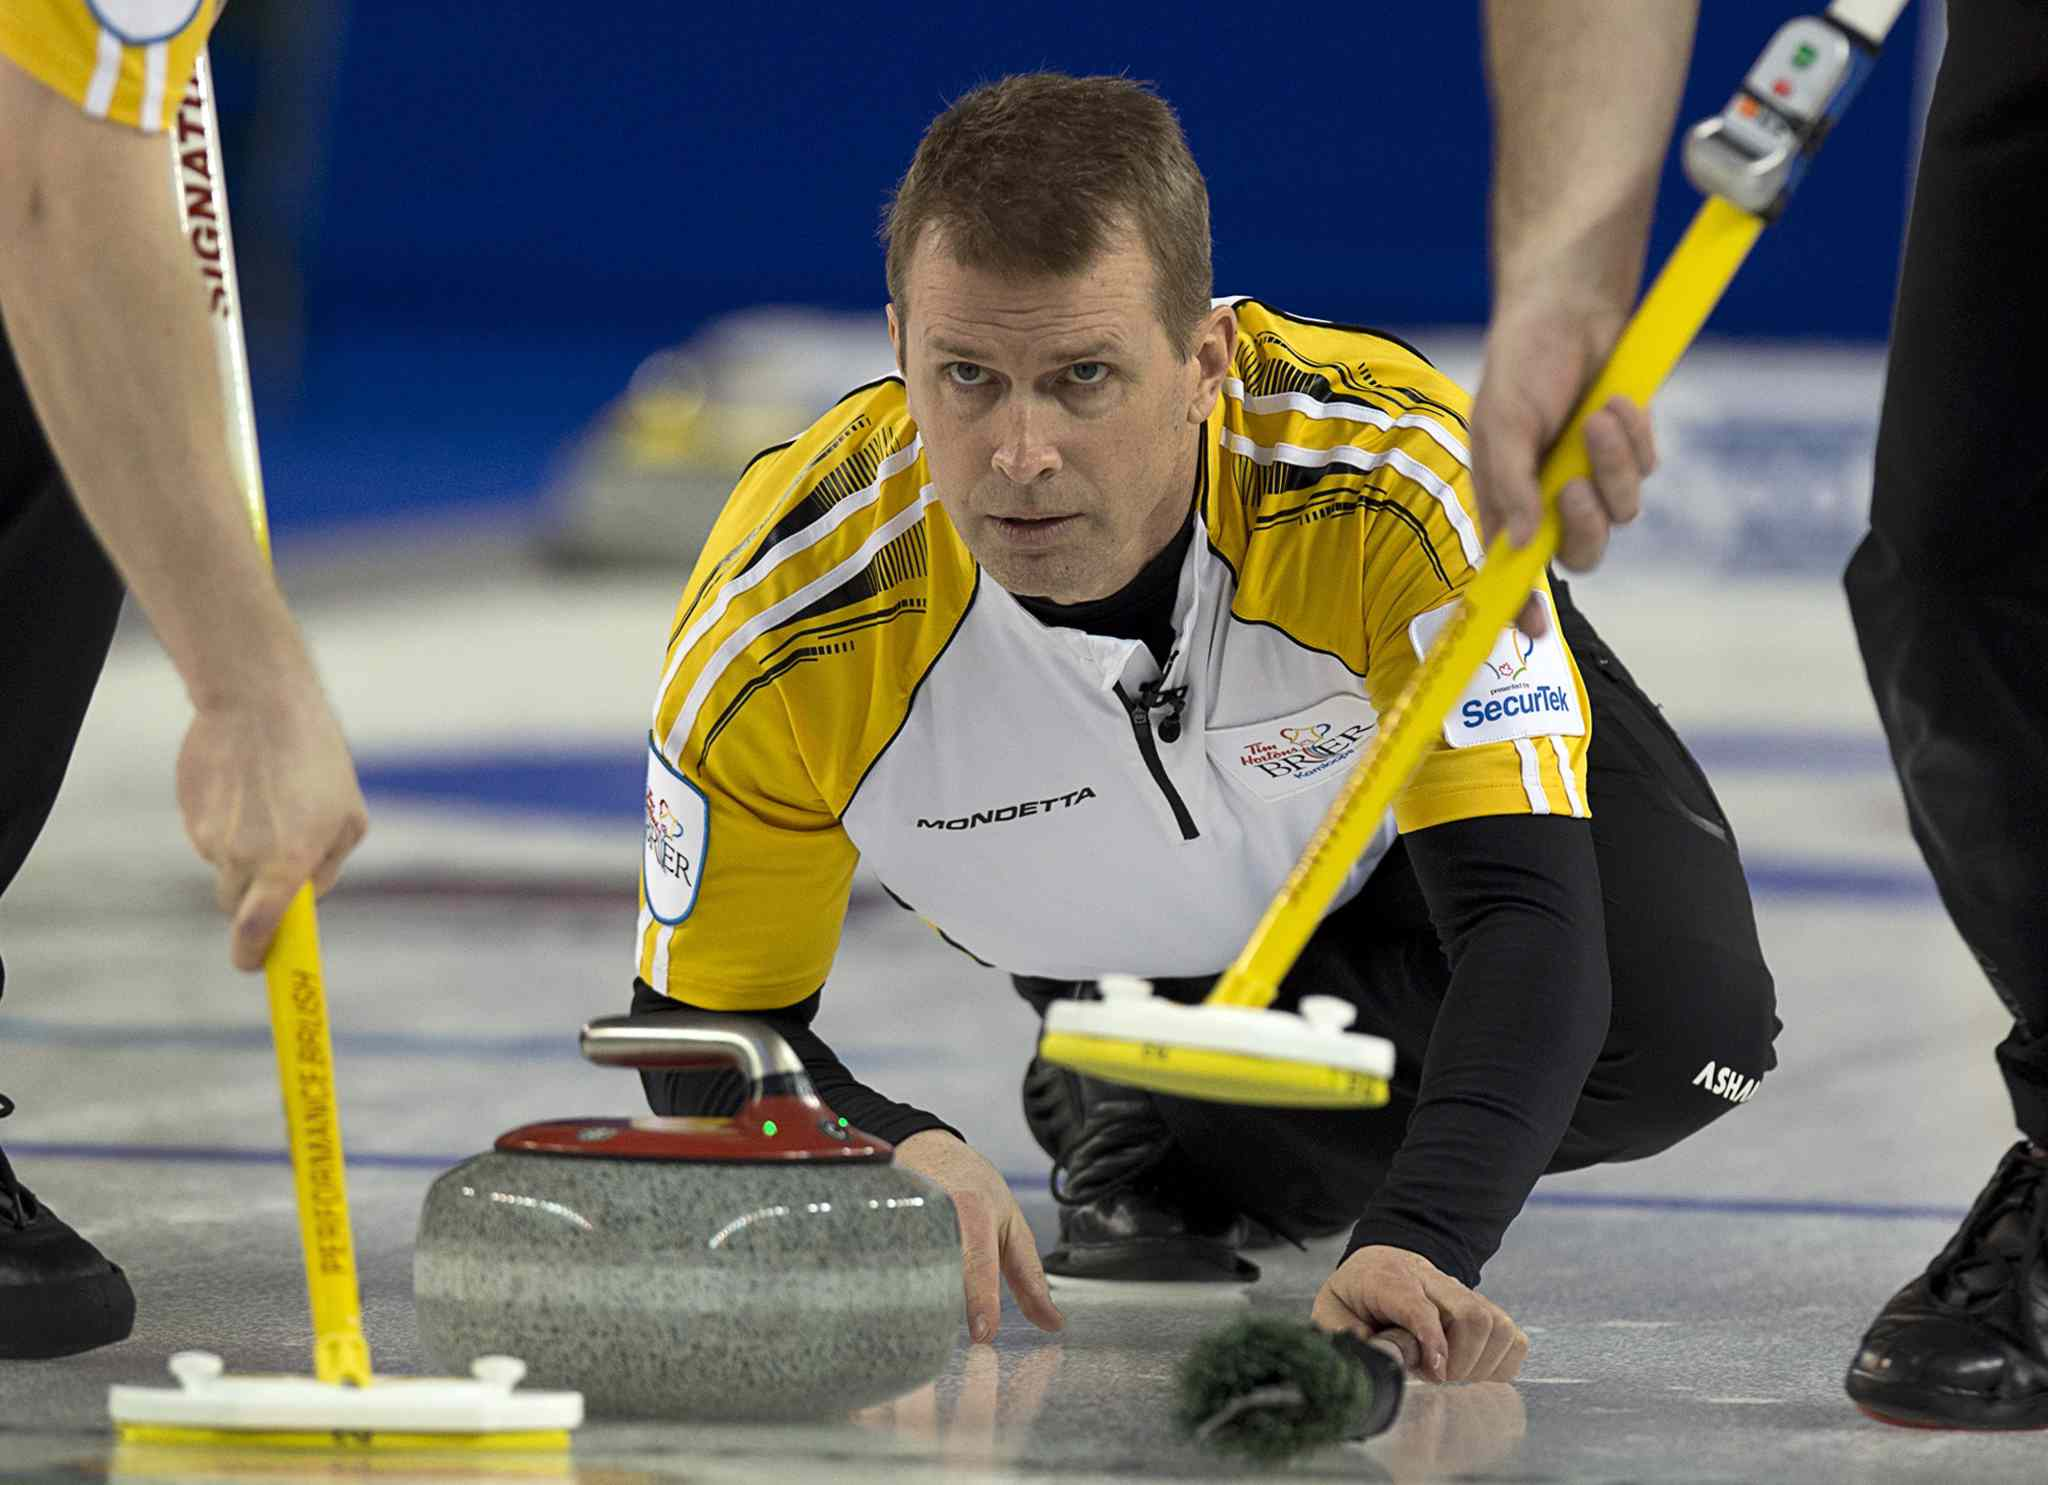 Manitoba skip Jeff Stoughton watches a rock as they play Nova Scotia at the Tim Hortons Brier in Kamloops, B.C. on Tuesday, March 4, 2014.